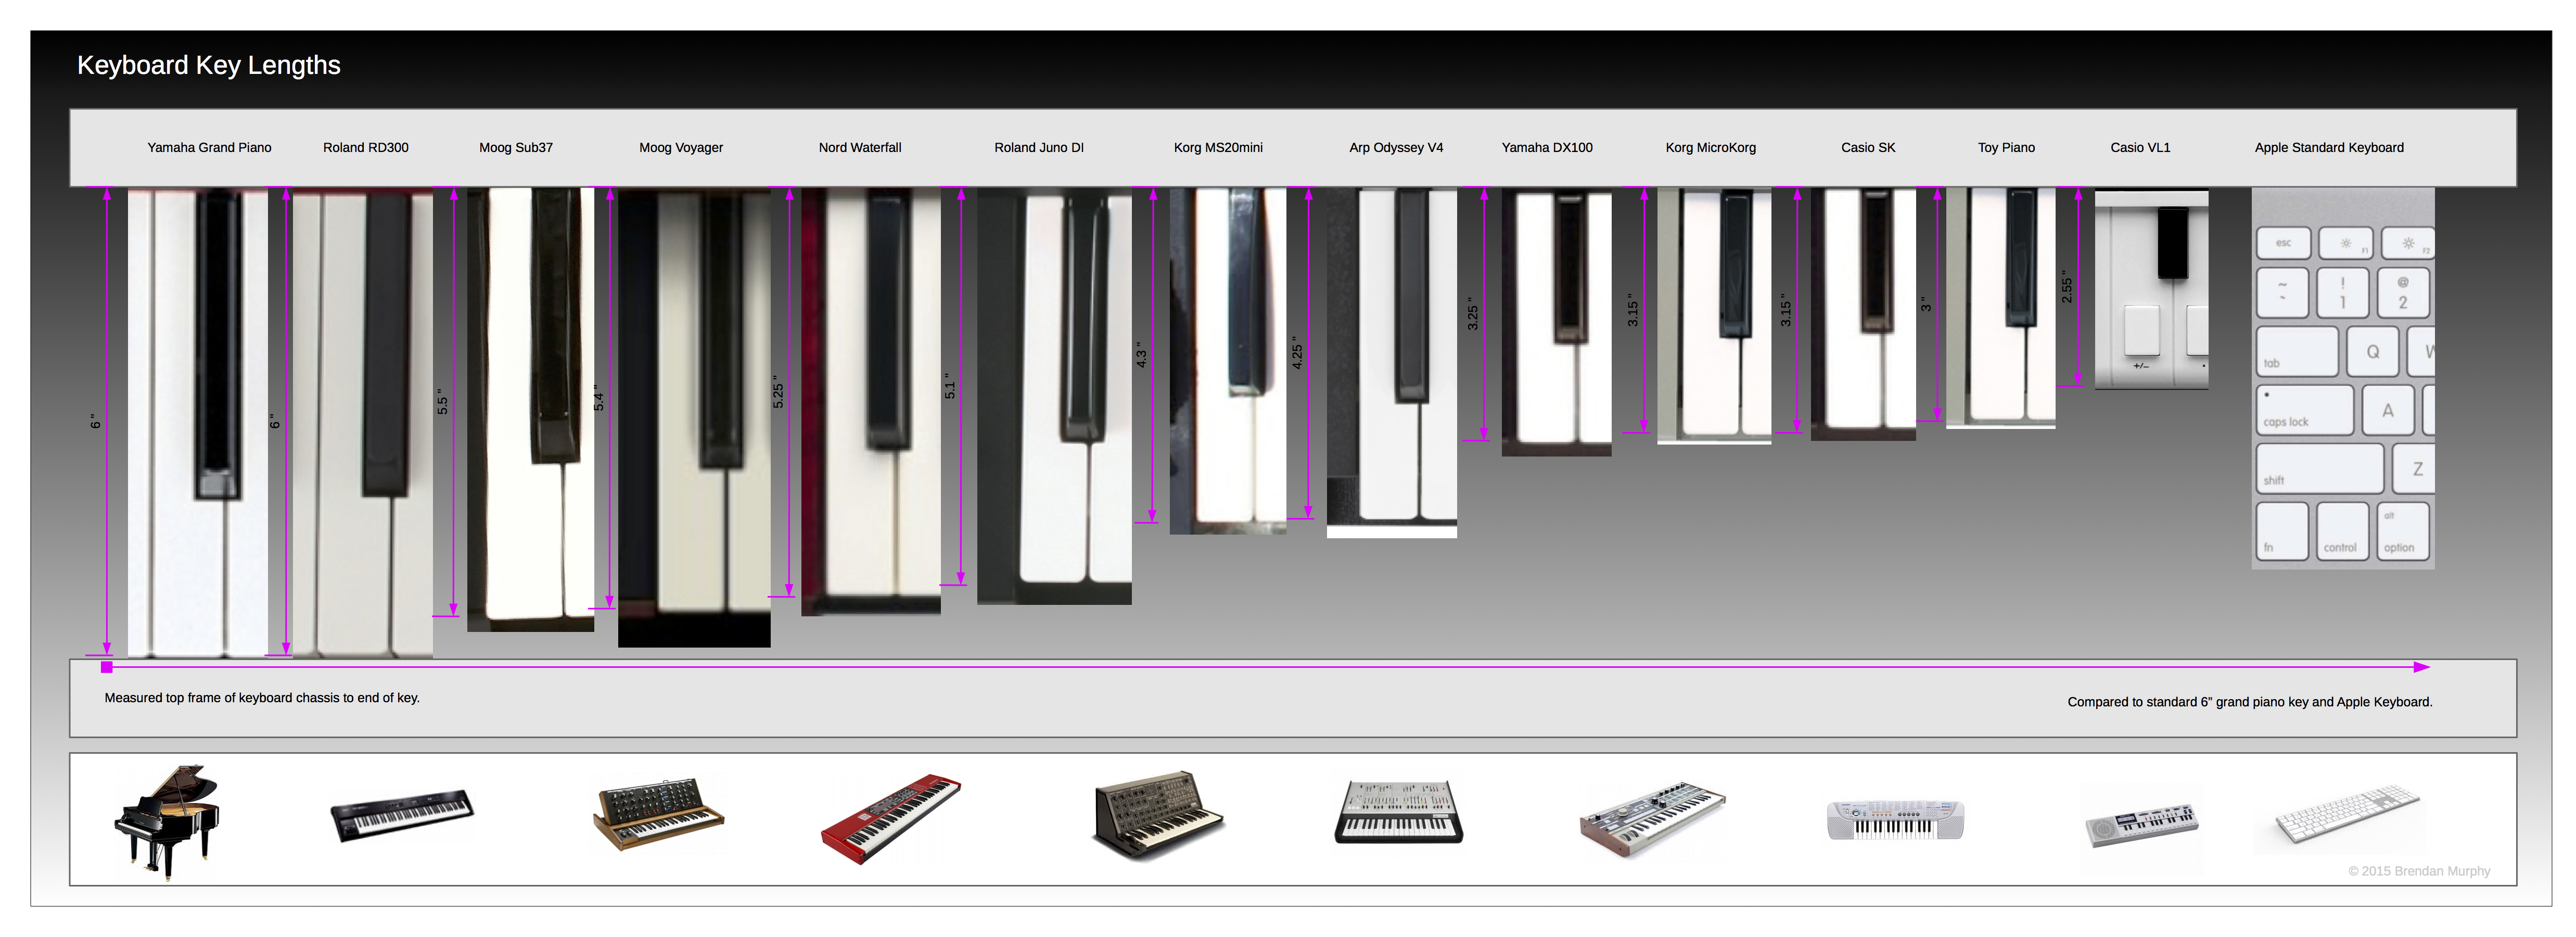 Sweetwater 39 s guide to keyboard key sizes for What size is a grand piano